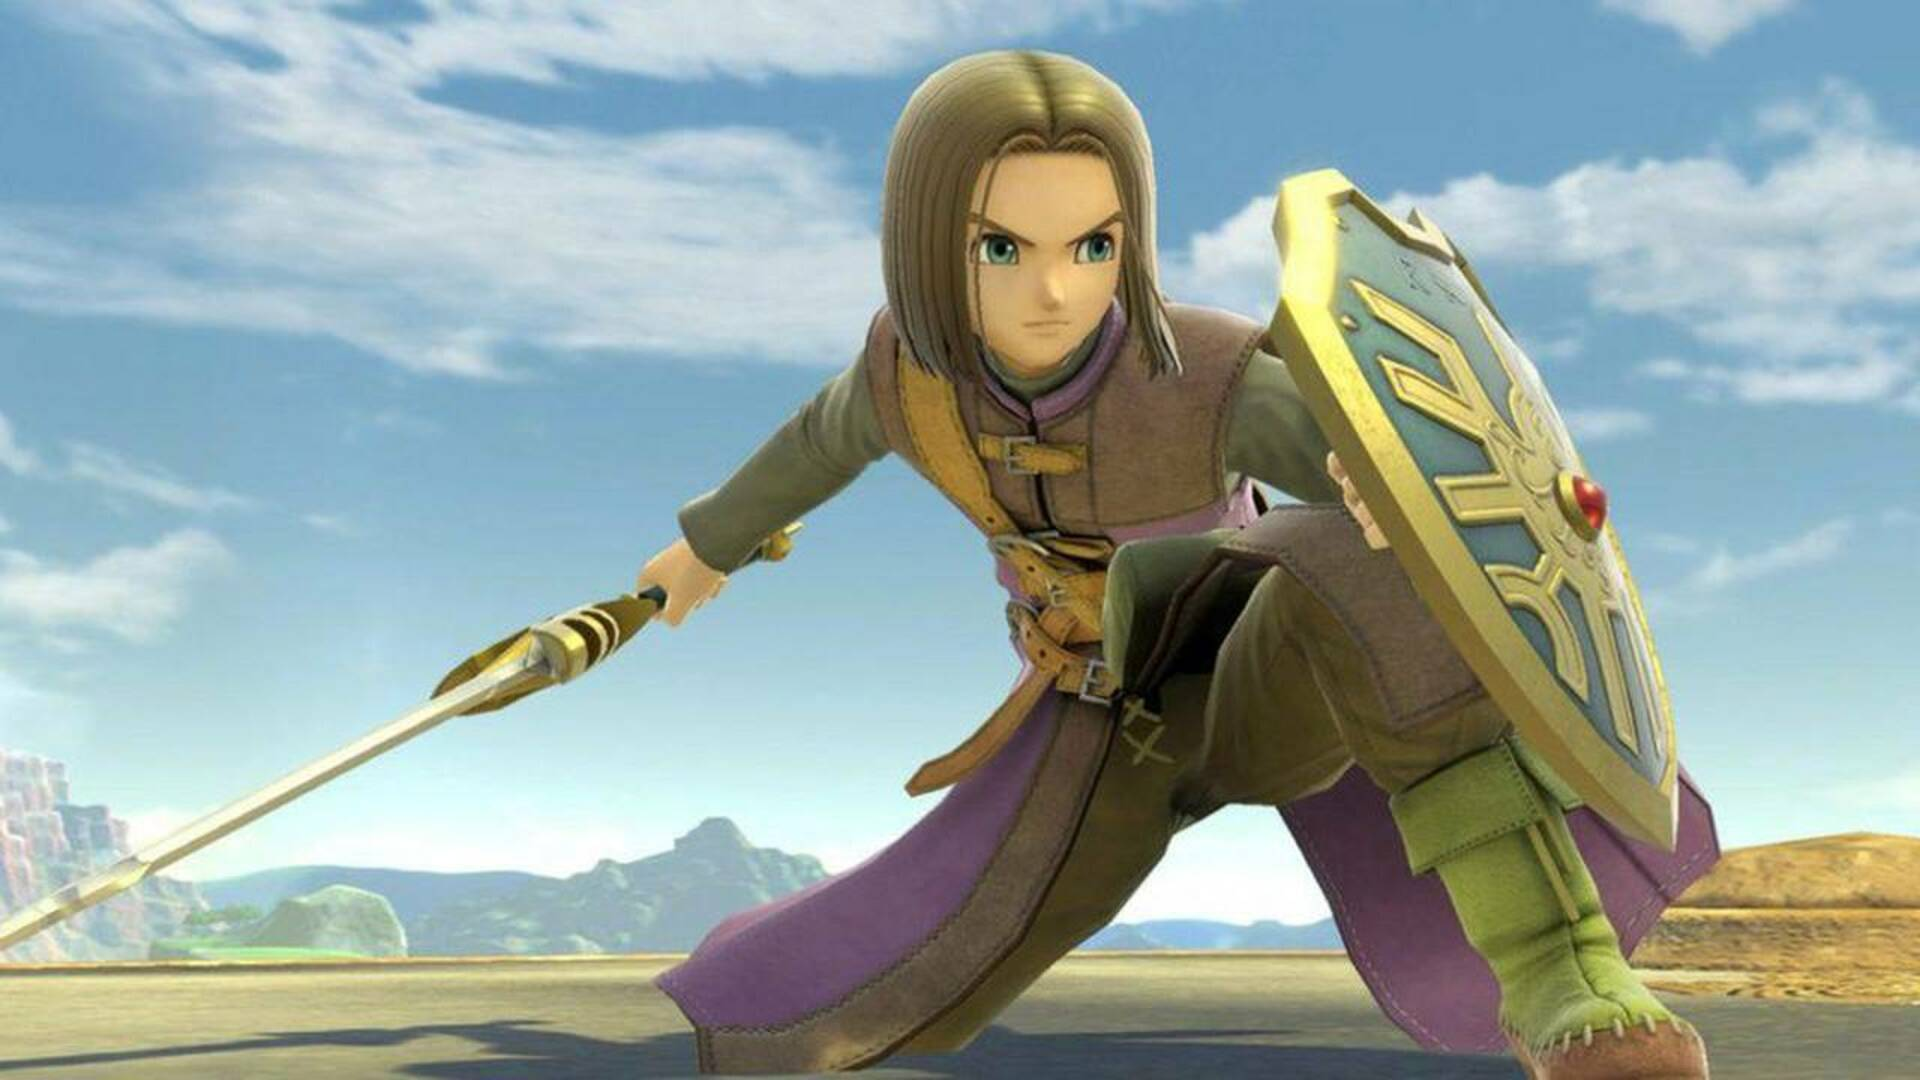 Super Smash Bros. Ultimate Character Ban Sets Off Massive Debate